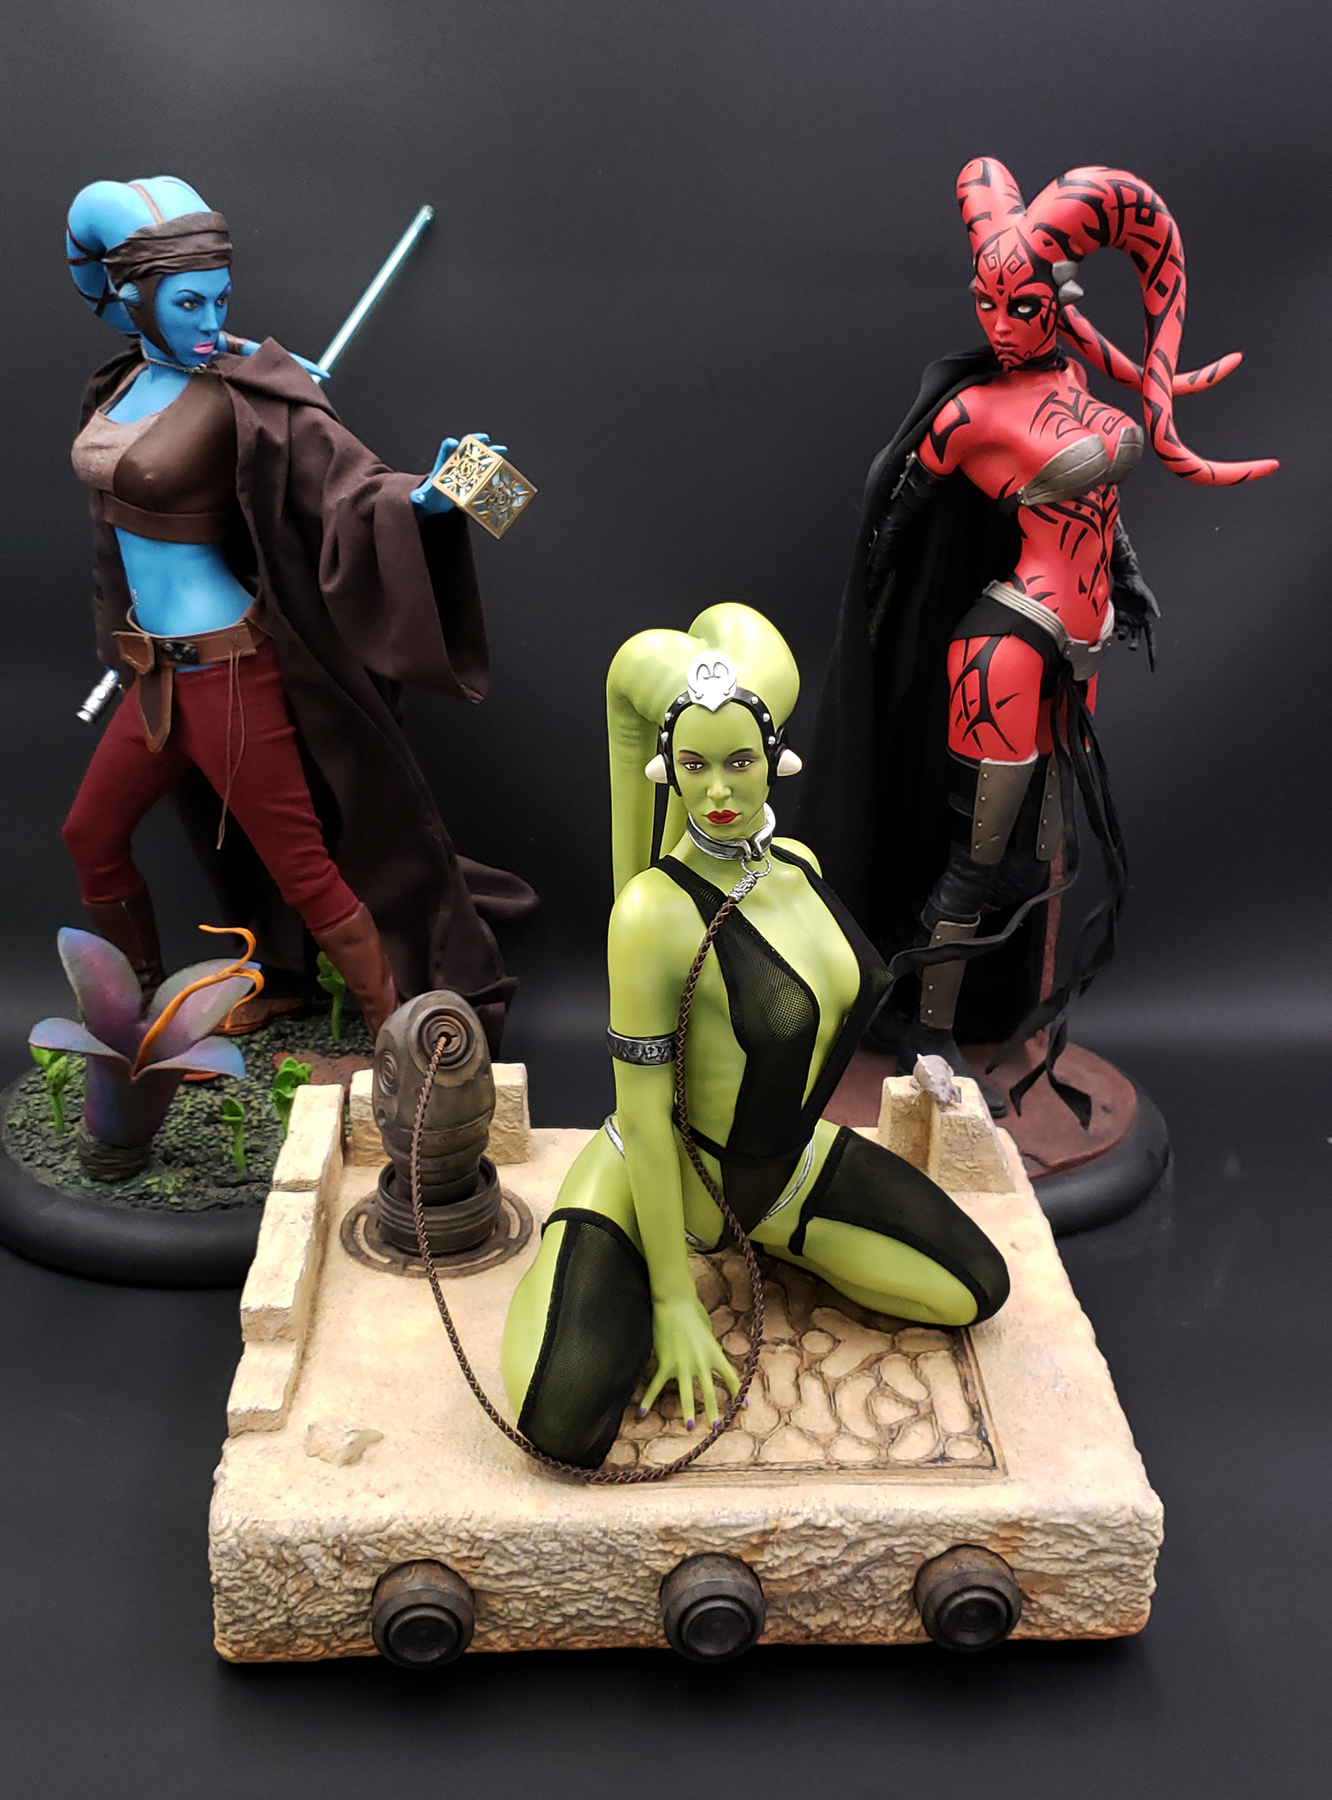 Oola_Star_Wars_Statue_23